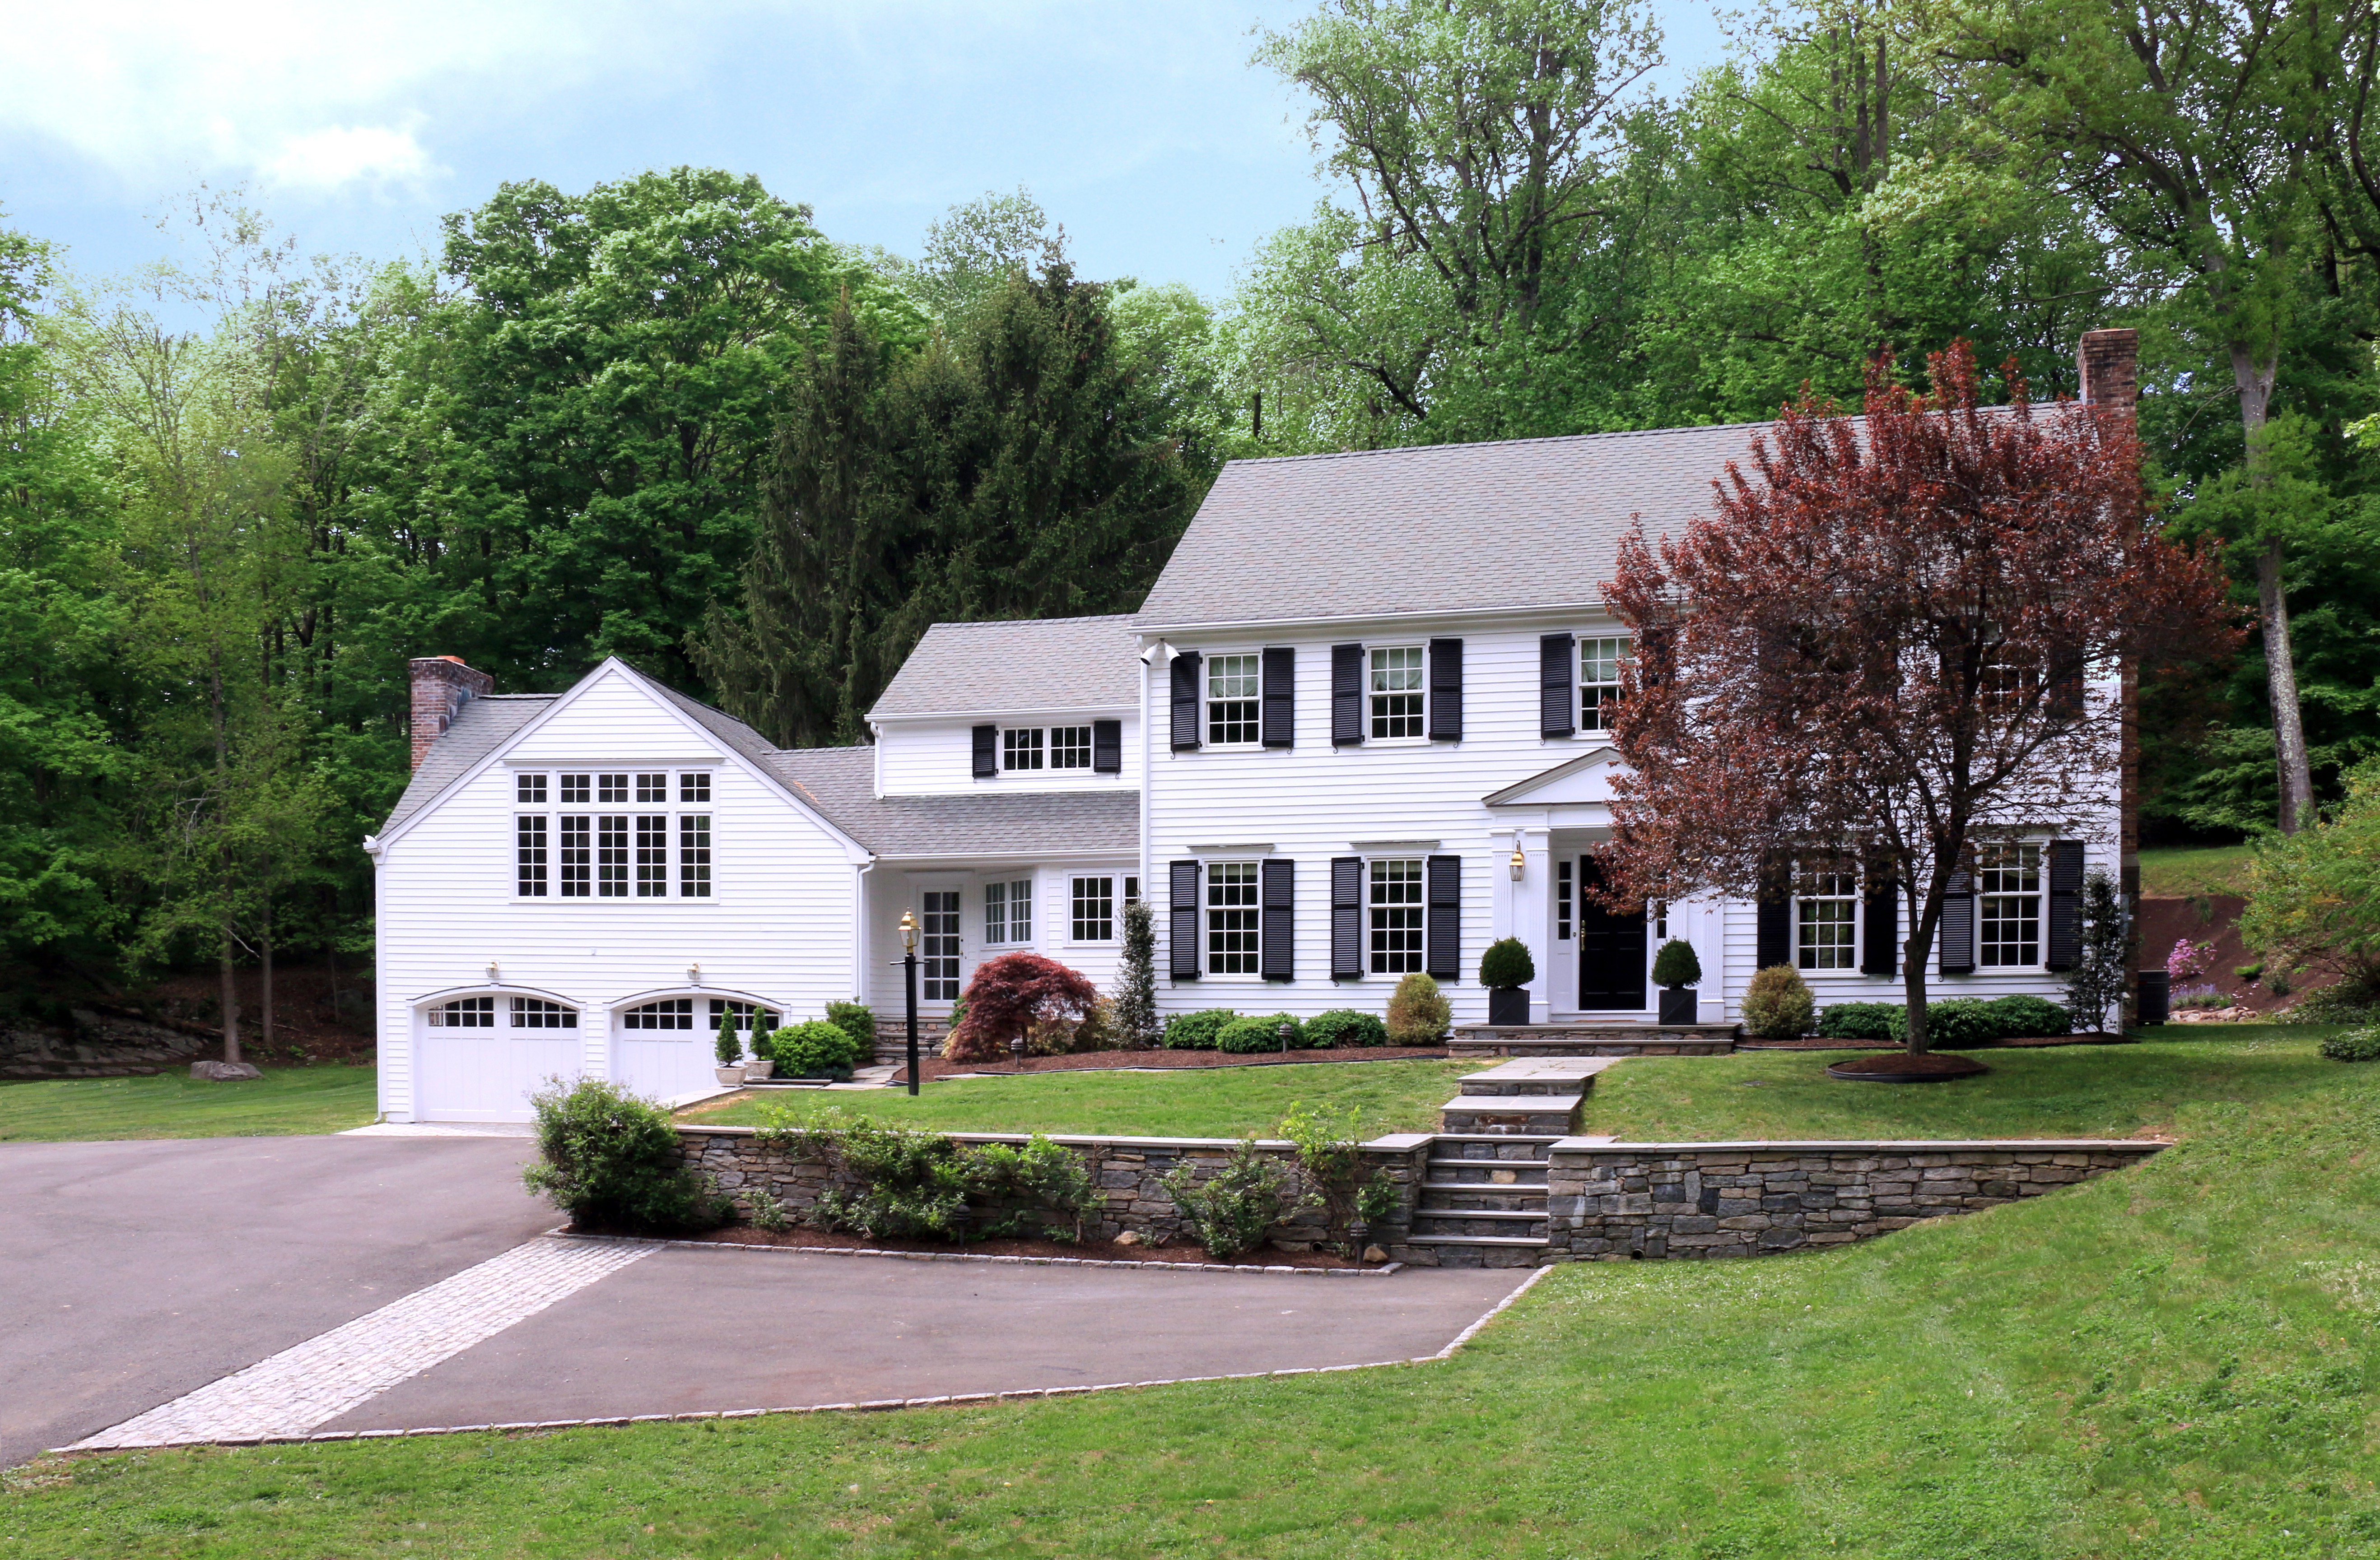 Single Family Home for Sale at Beautiful Connecticut Classic 104 Cheesespring Road Wilton, Connecticut 06897 United States